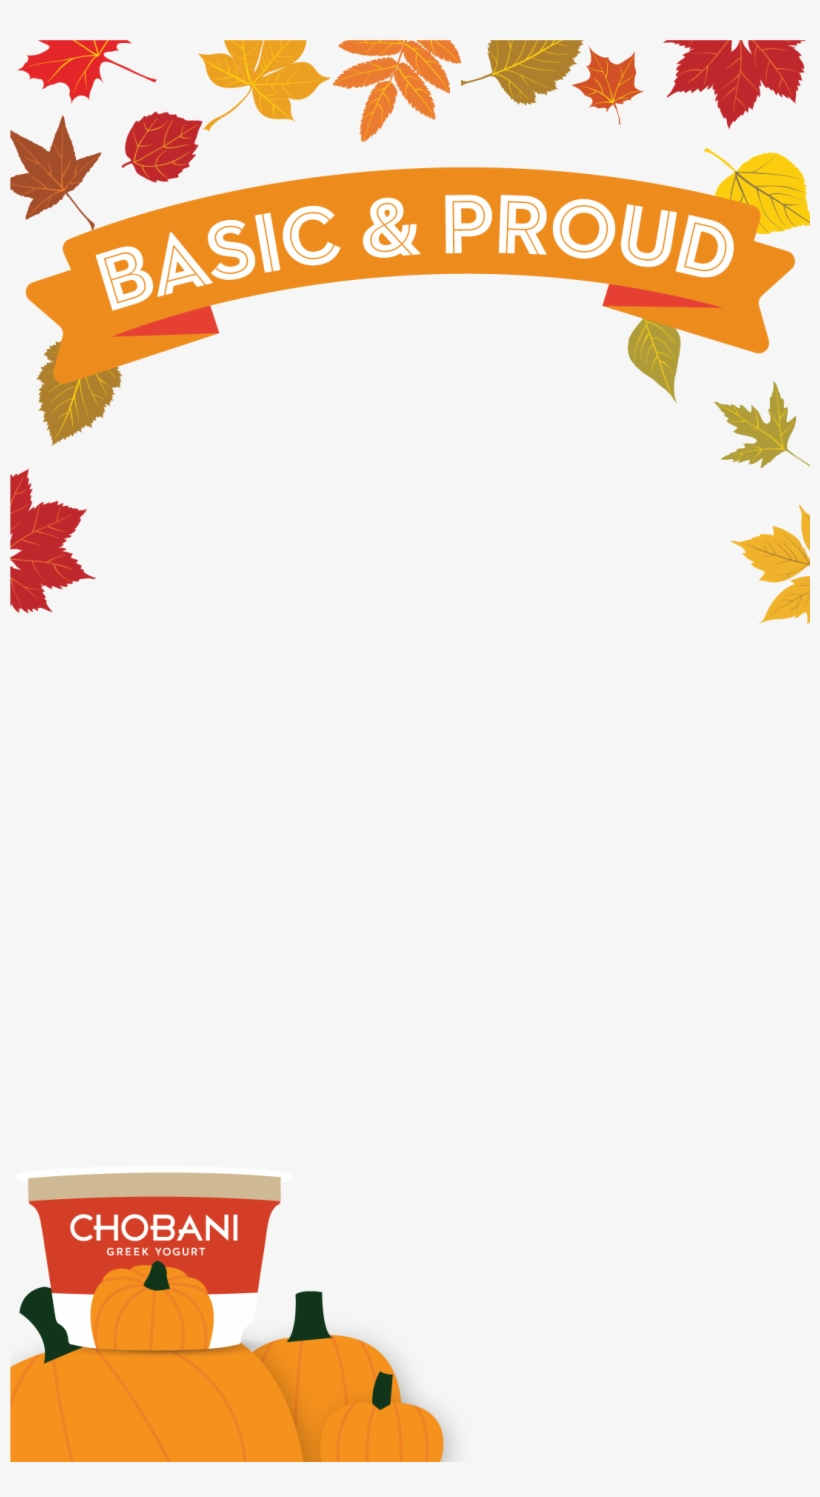 Png Snapchat Filters - Snapchat Food Filters Png, transparent png #10882